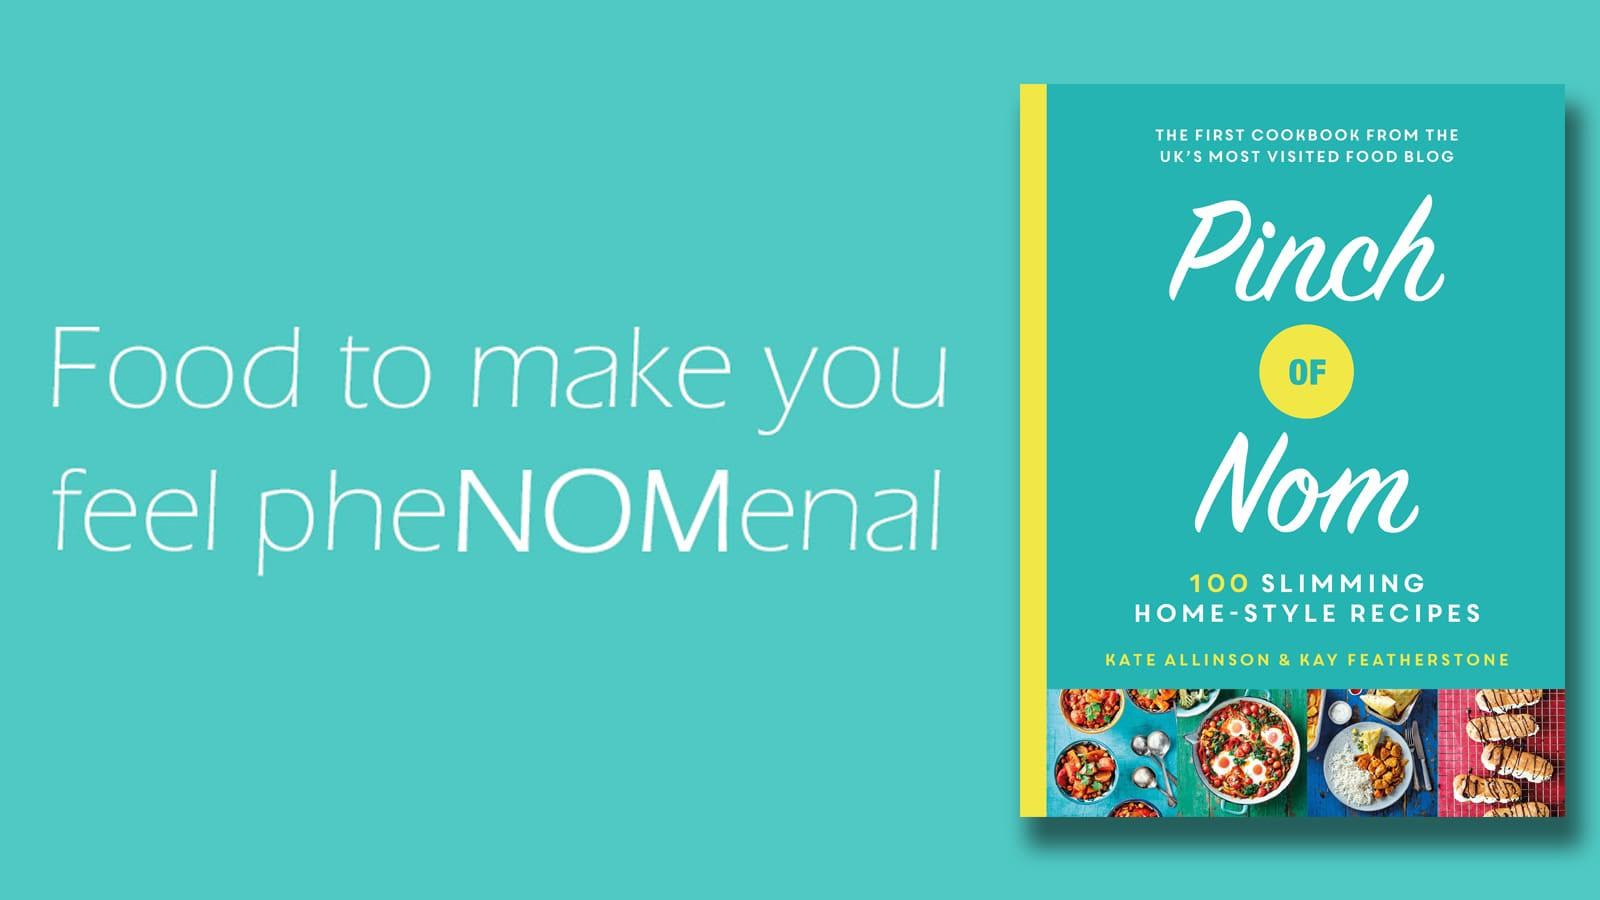 Image showing the Pinch of Nom book cover and the words: 'Food to make you feel pheNOMenal.'